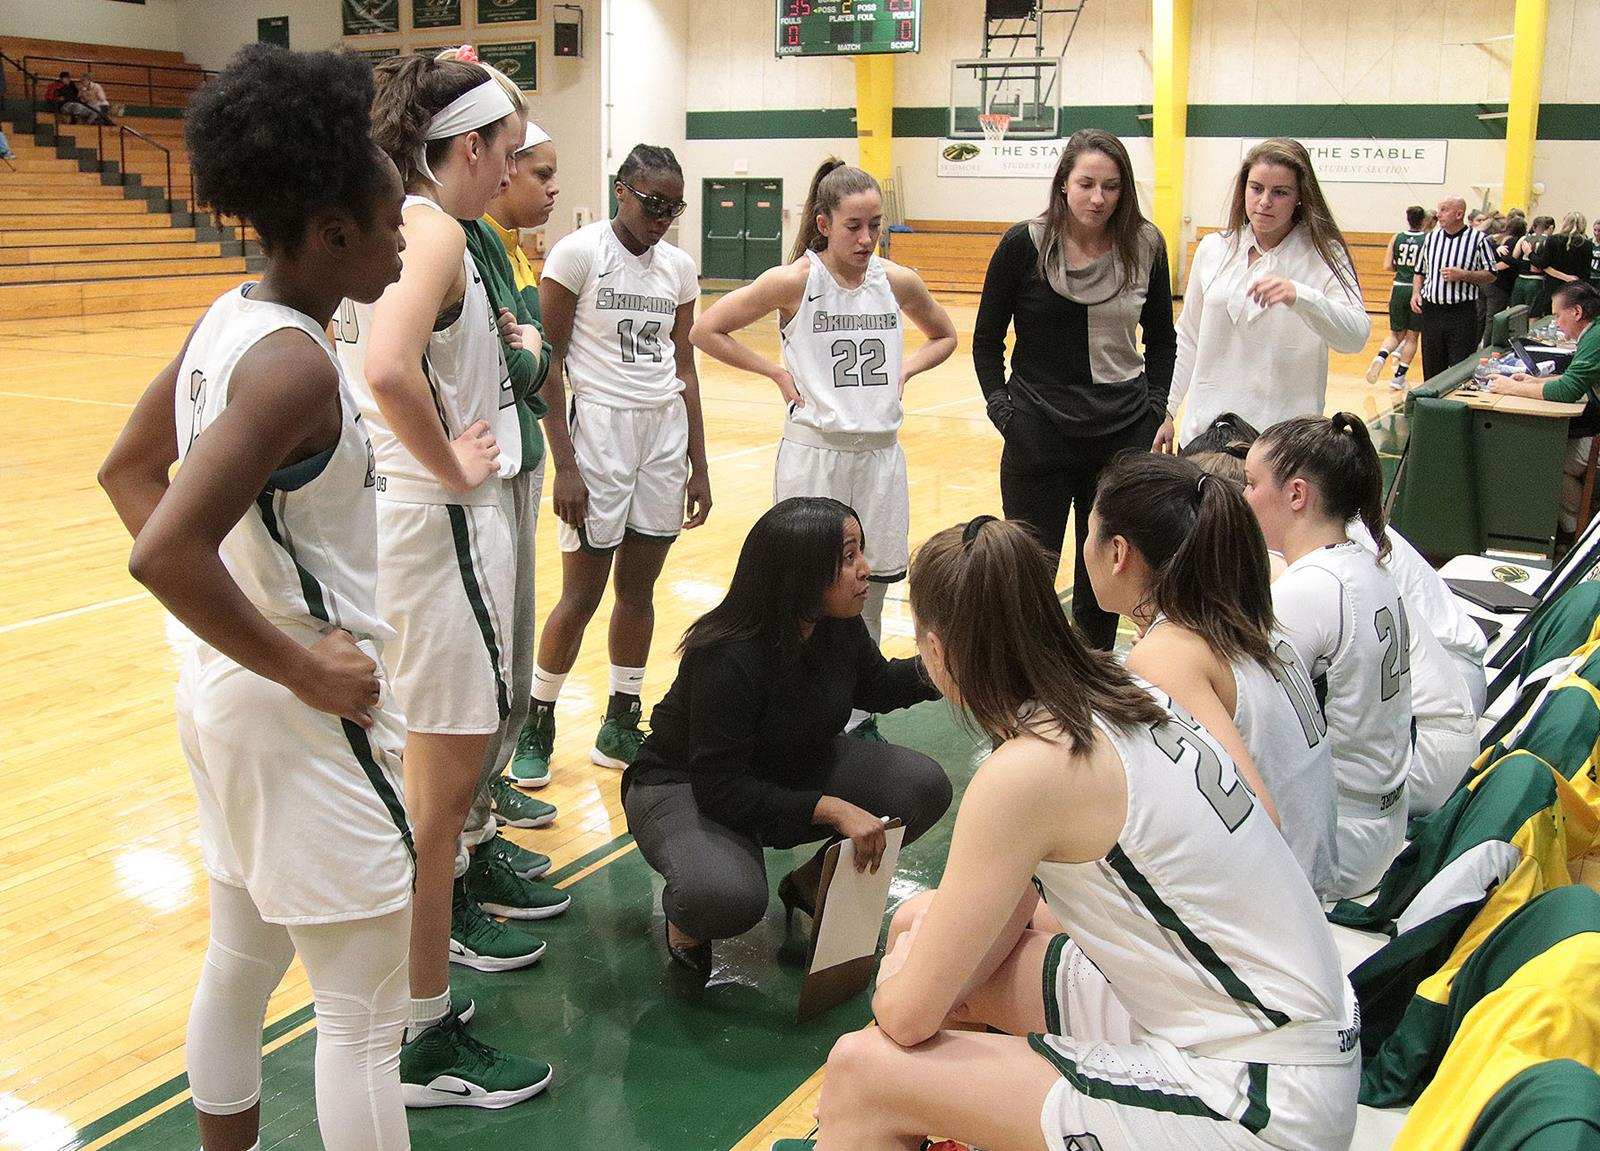 Women's Basketball - Skidmore College Athletics